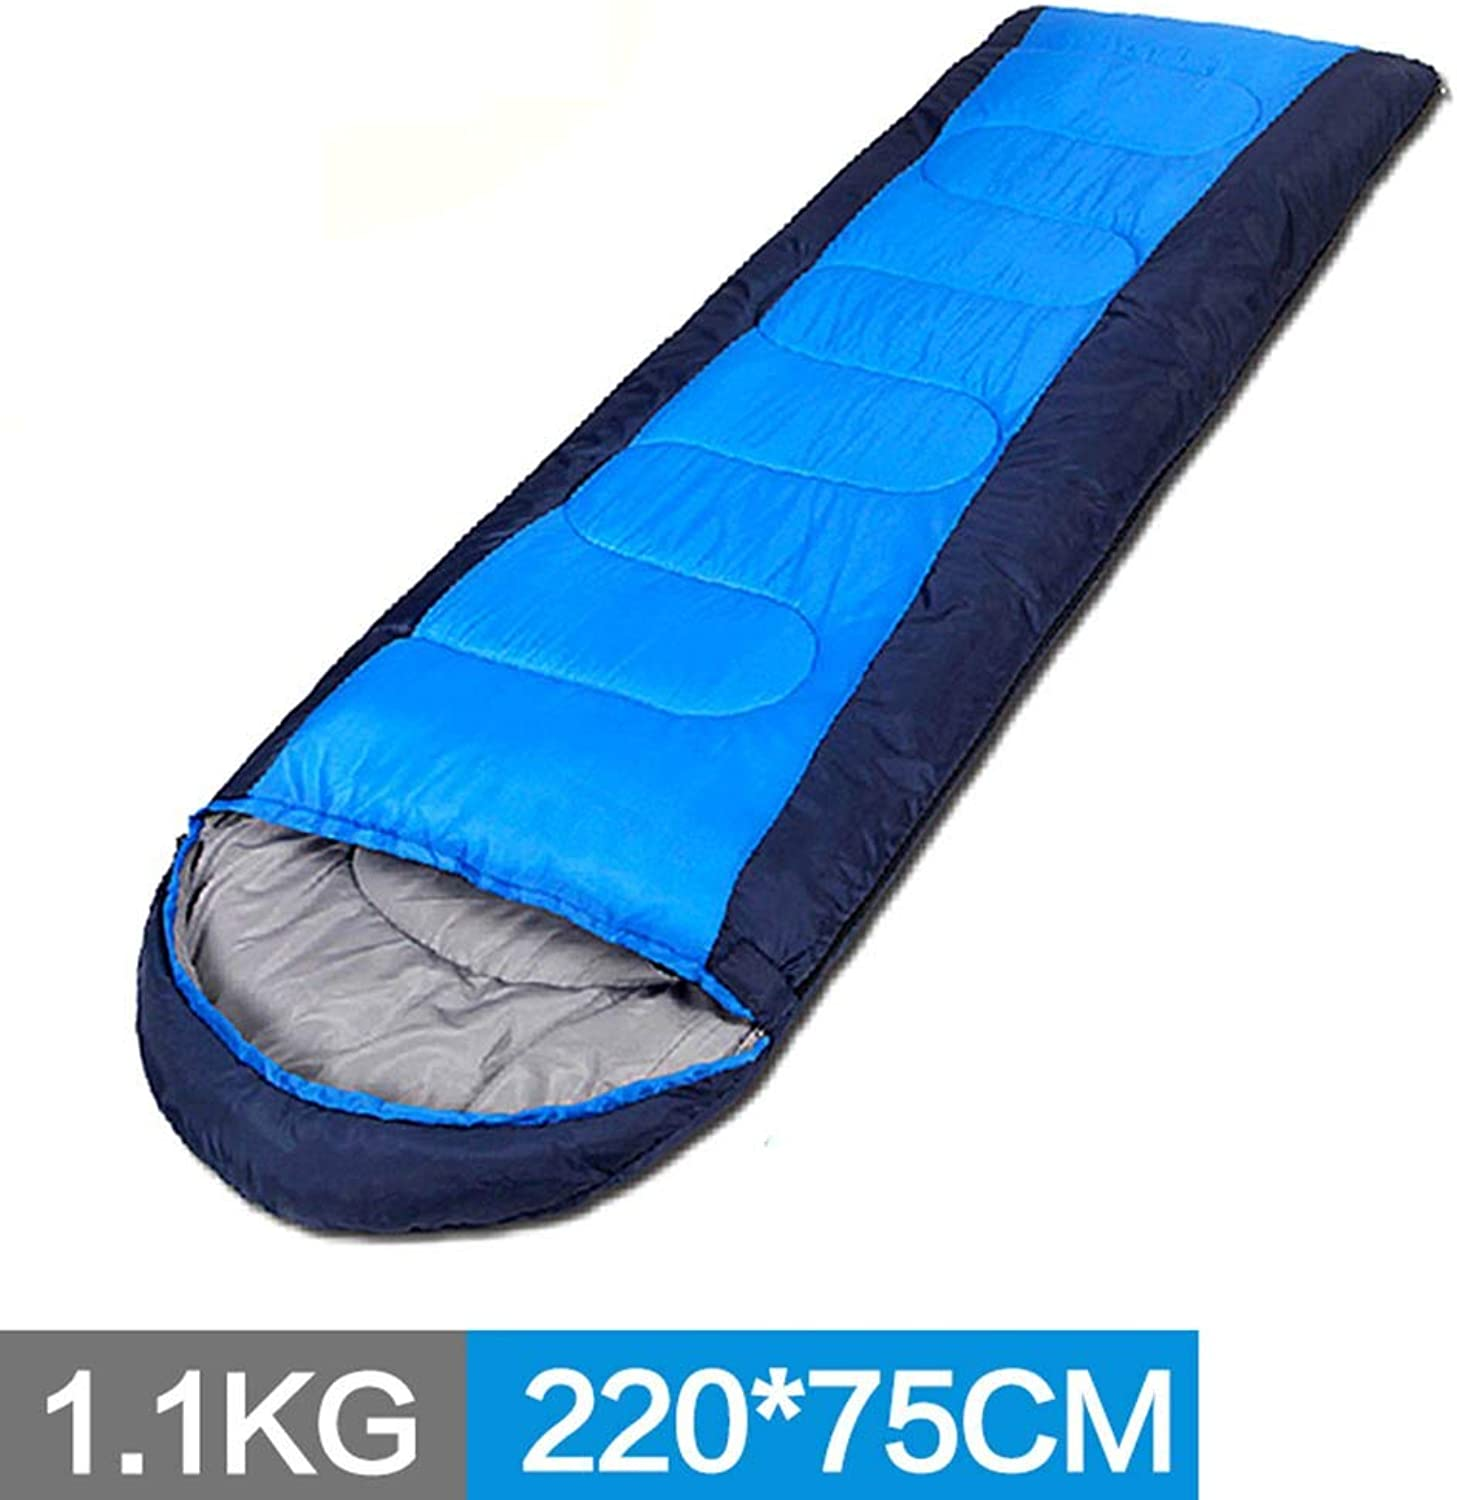 Sleeping Bag, Spring and Summer Four Seasons Keep Warm Outdoor Indoor Camping Travel Adult Easy to Carry (color   1.1kg)